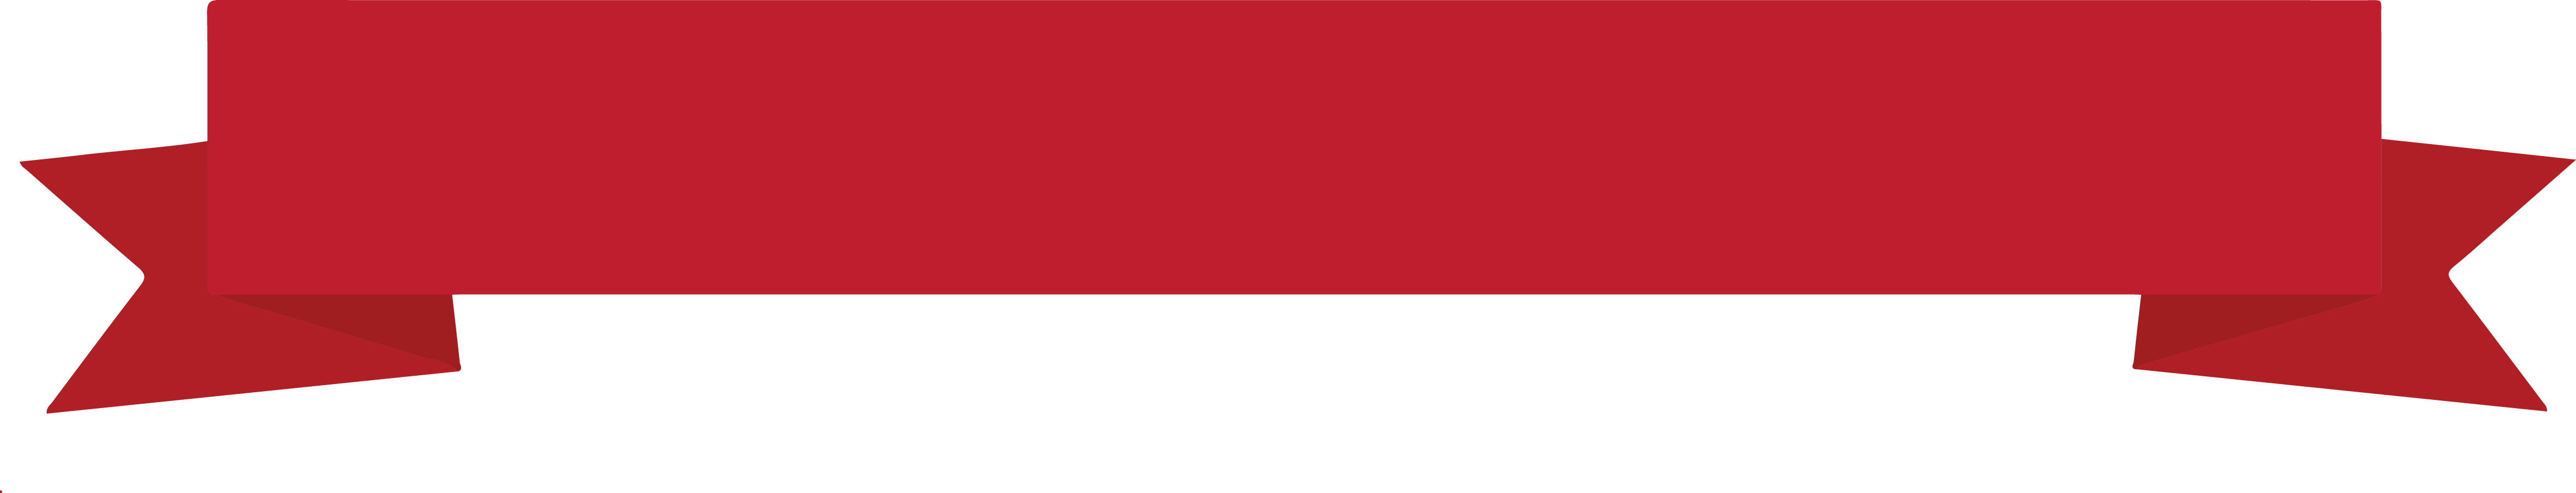 Classic Red Banner Png 6448